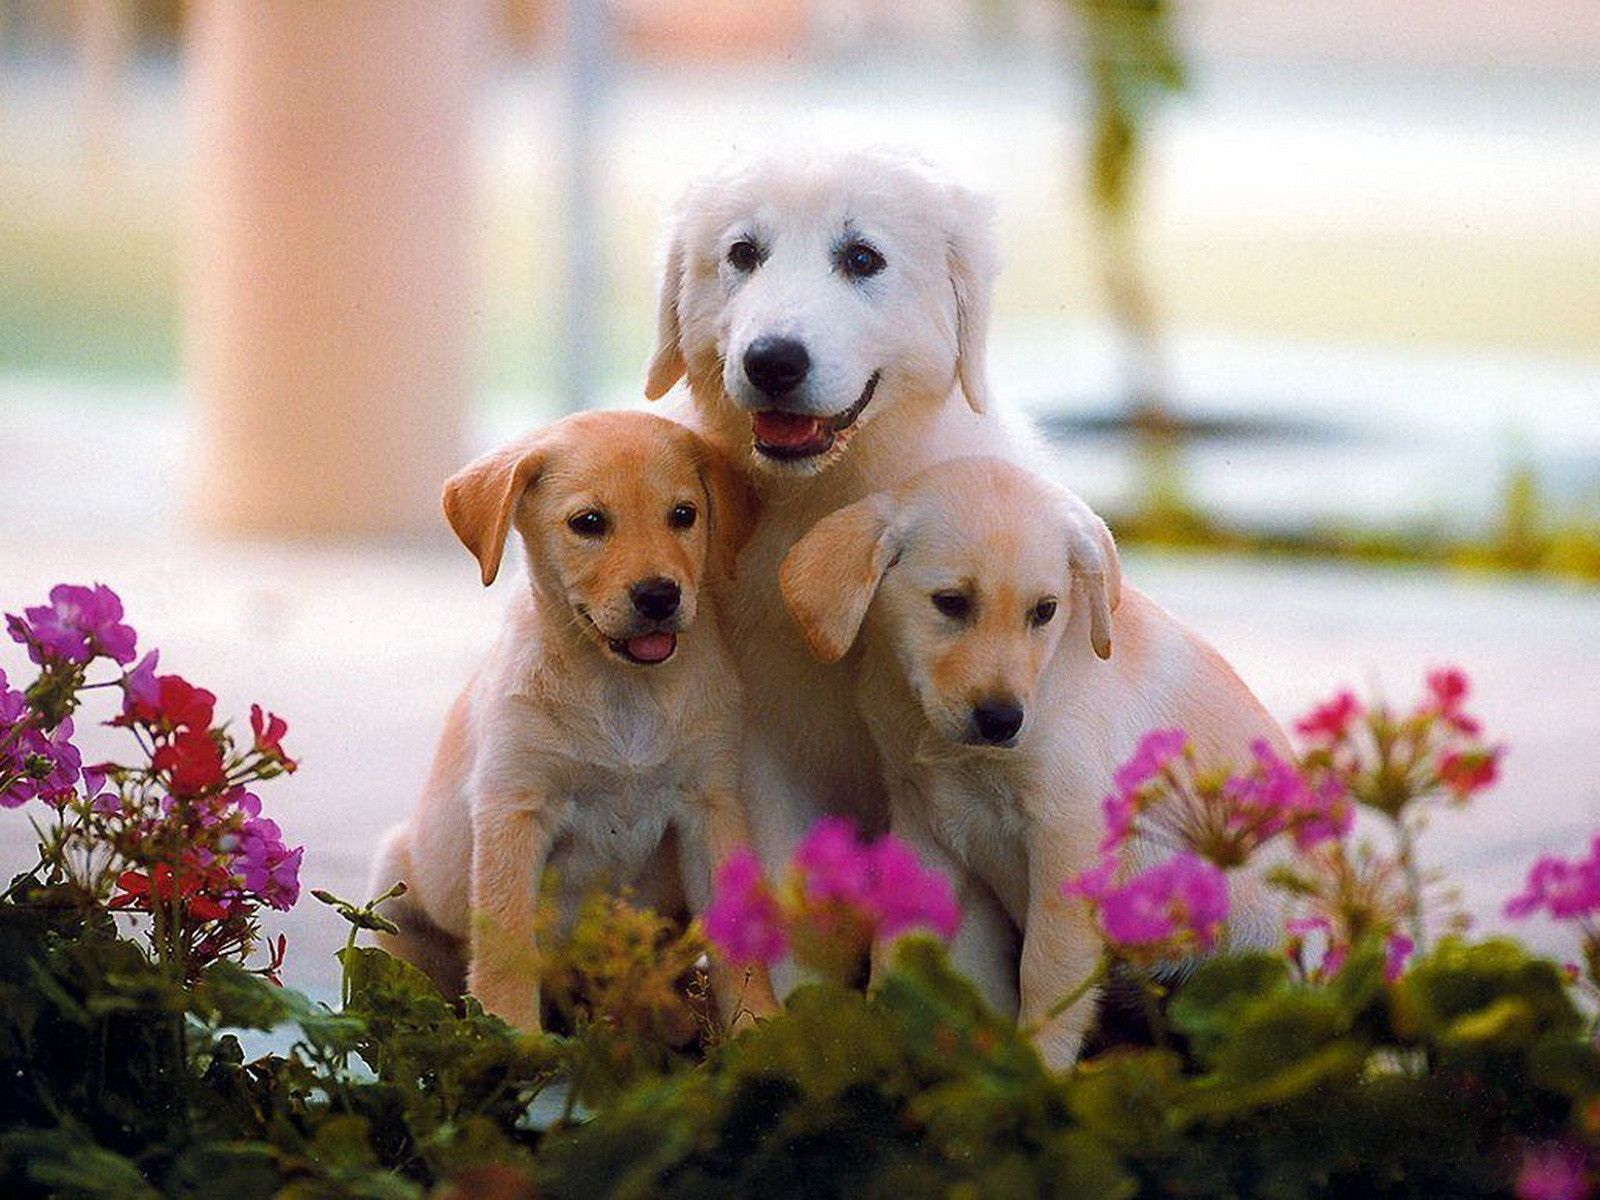 cute dog wallpapers high quality with wallpaper high resolution